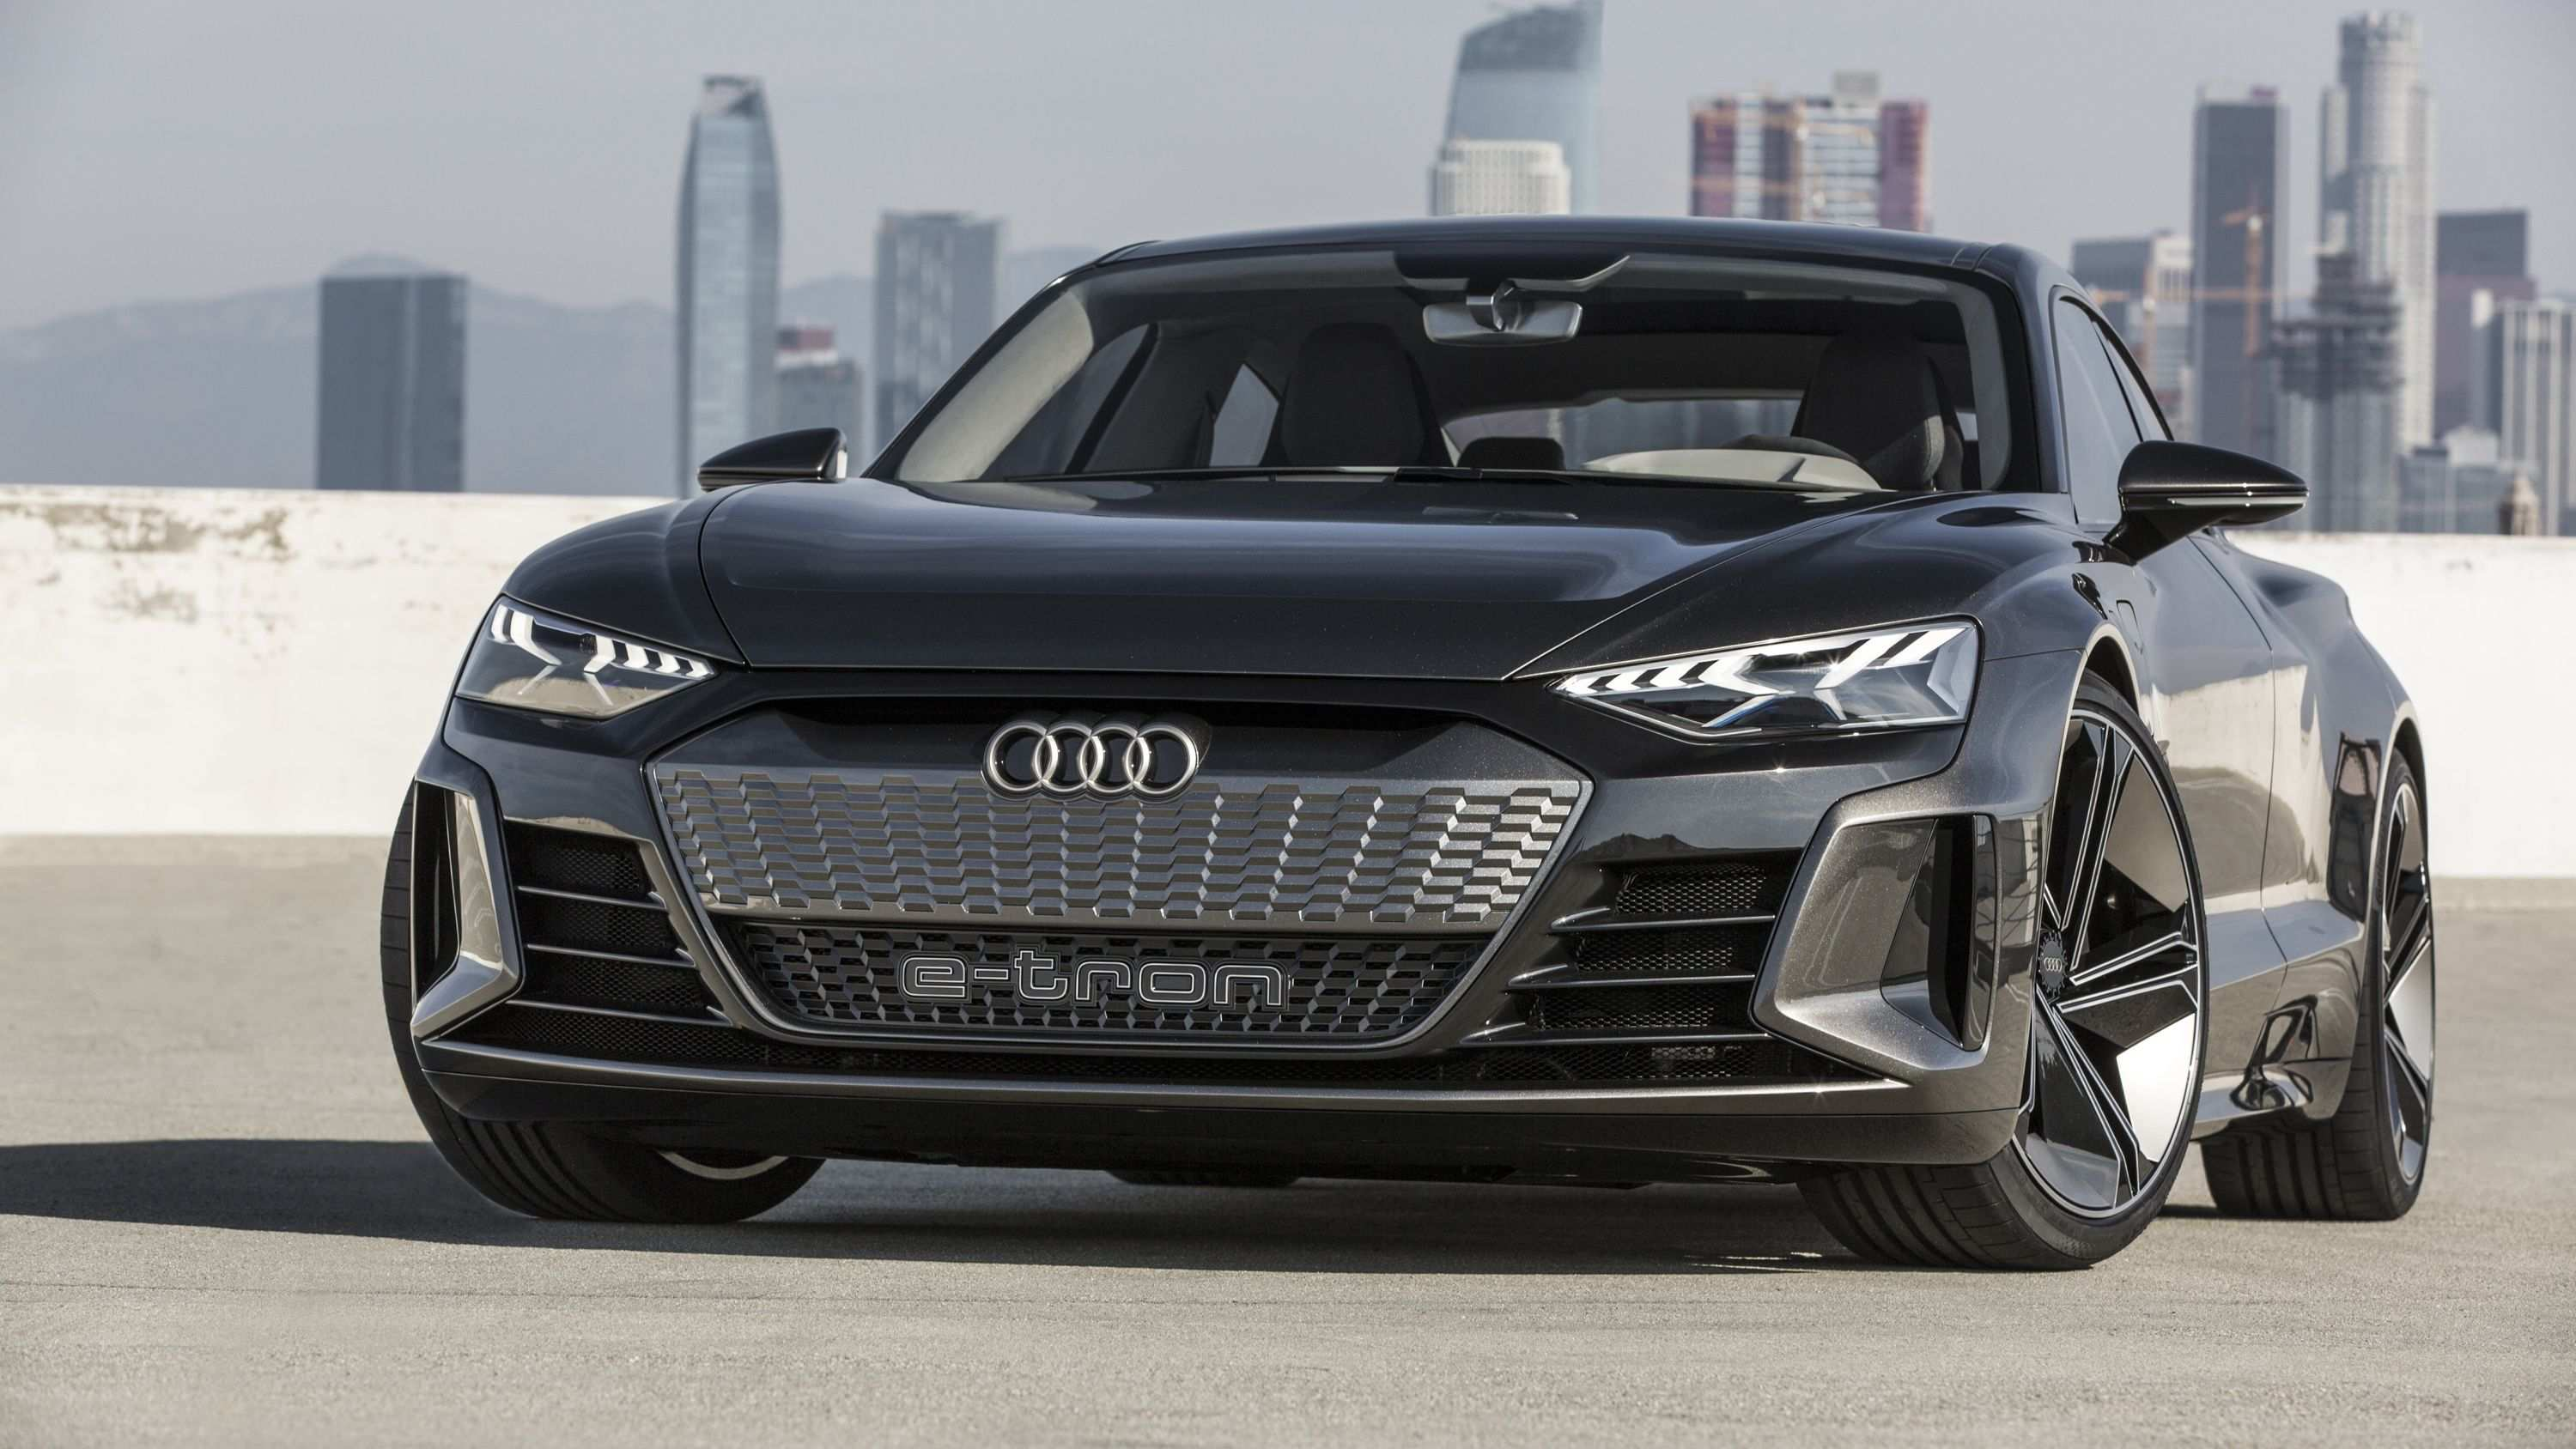 92 Best Audi Voiture 2020 Price And Release Date